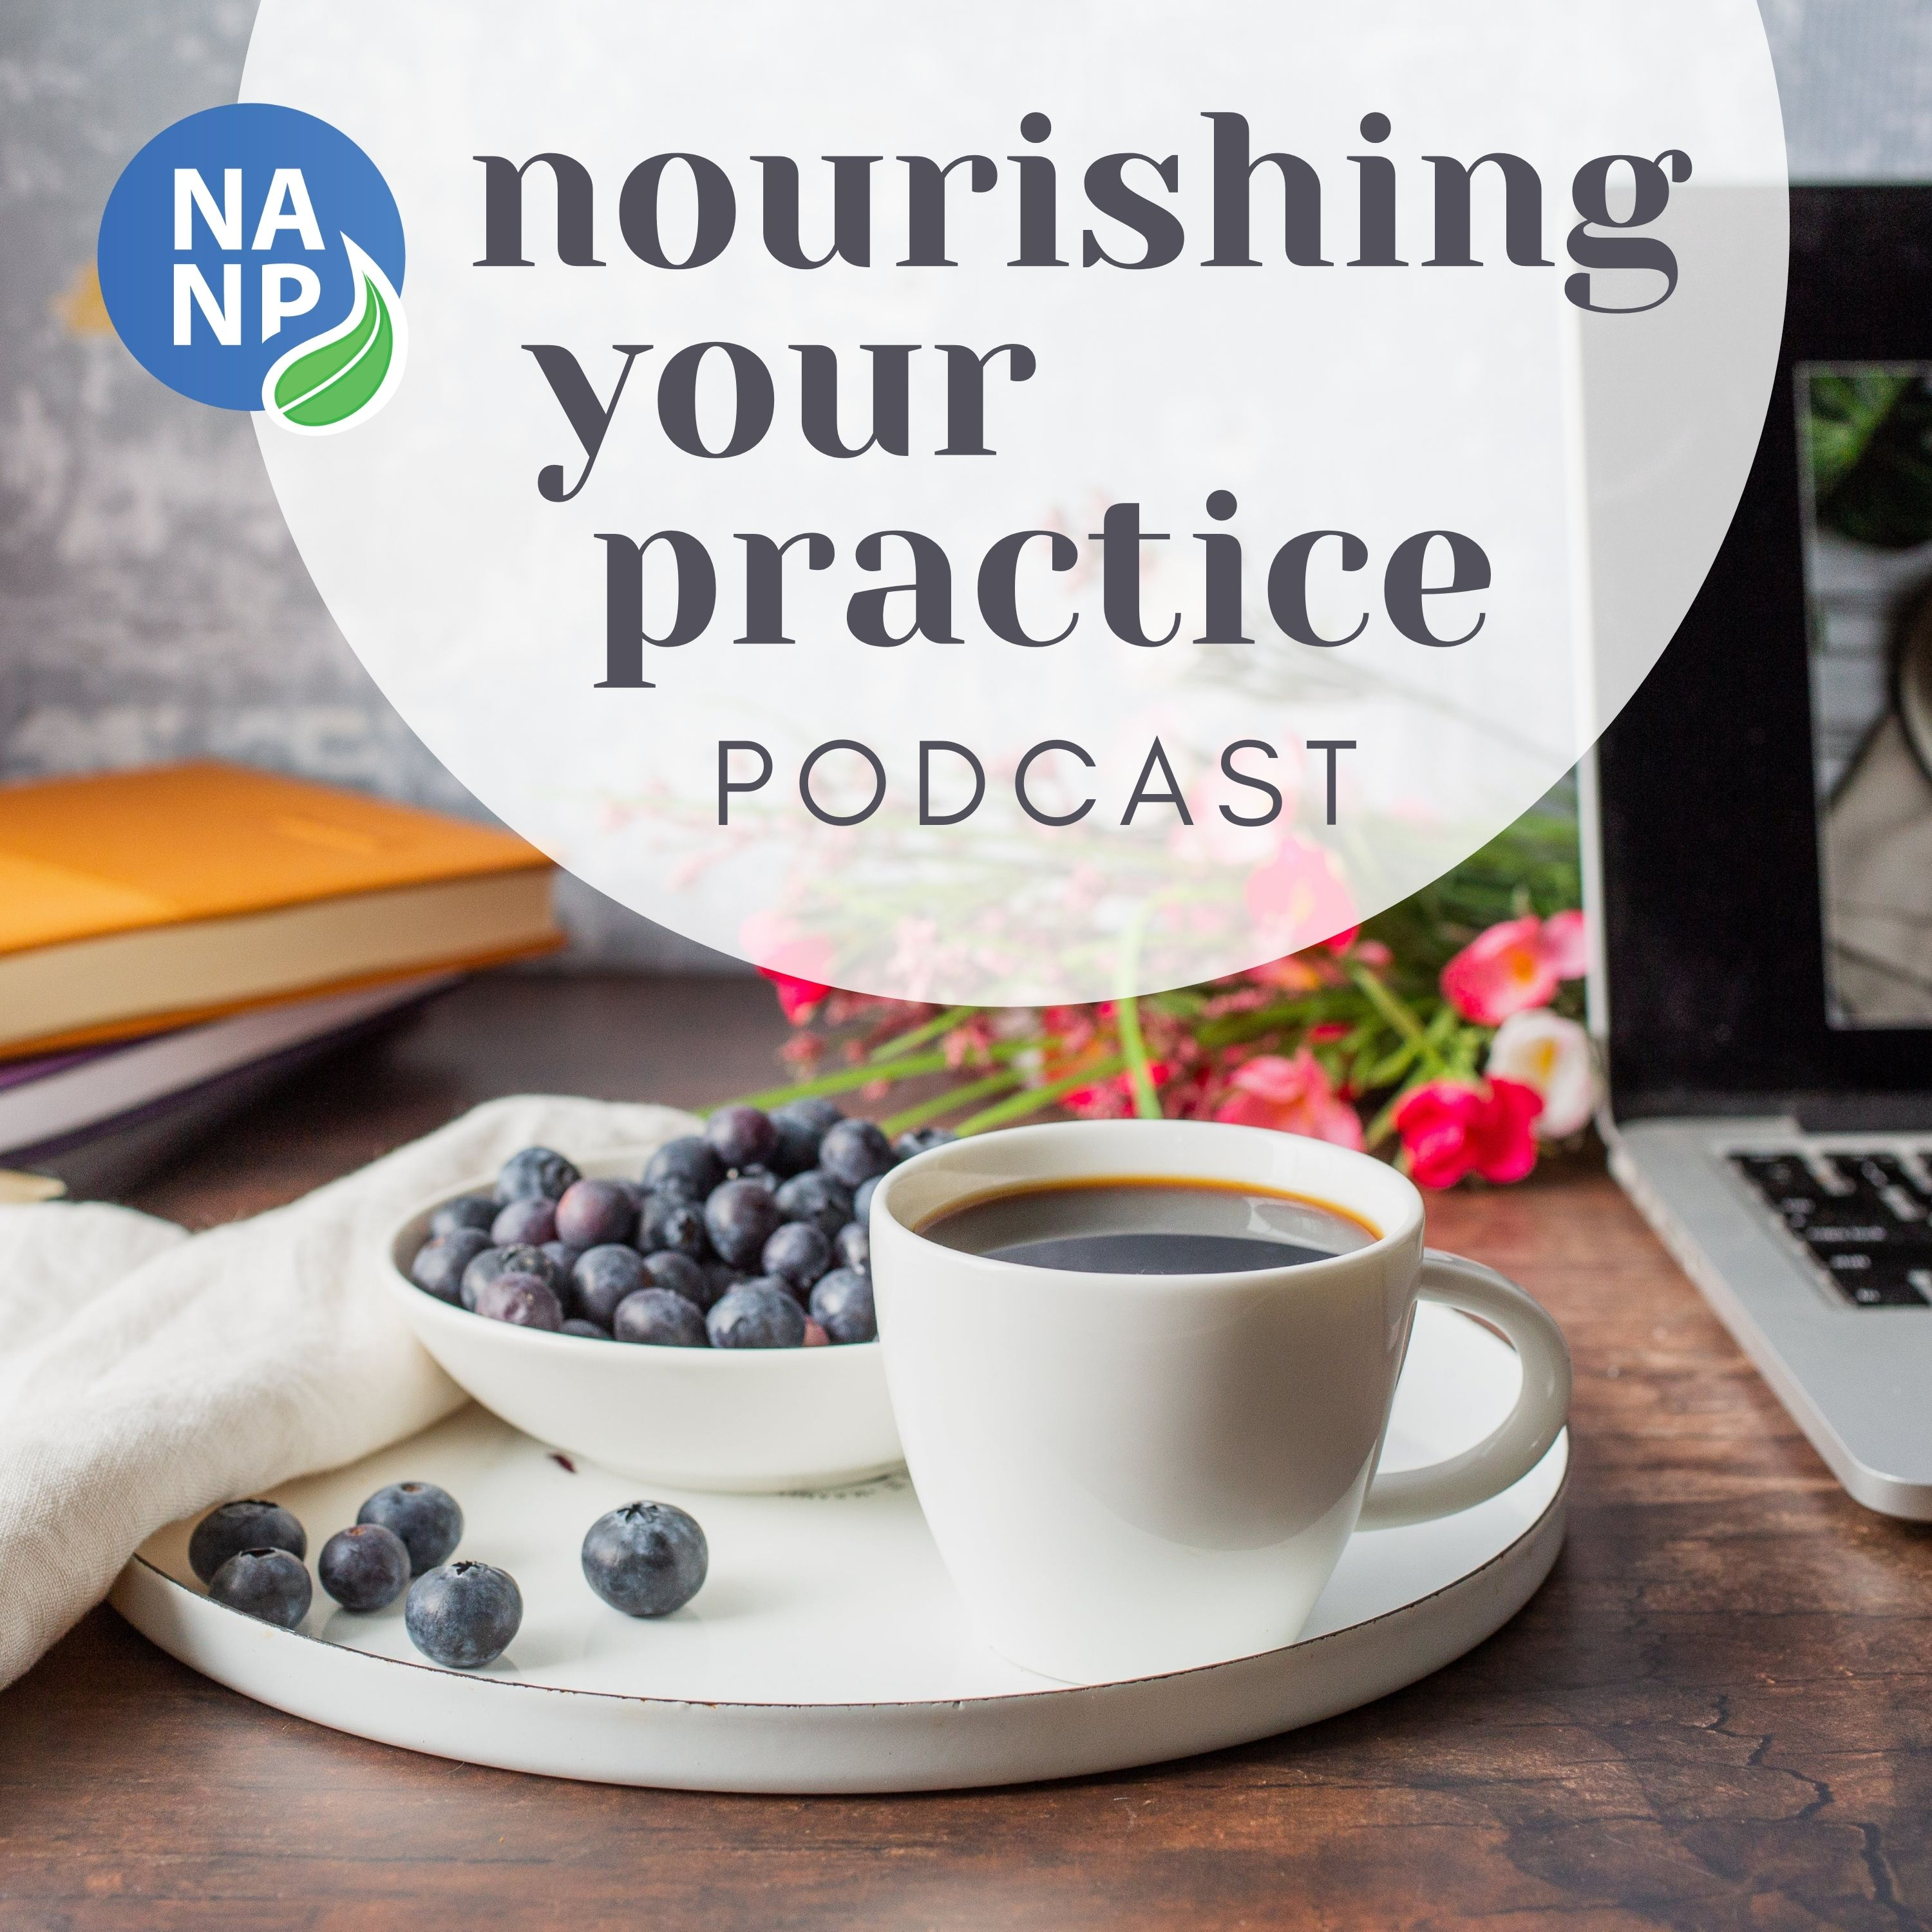 NANP Nourishing your Practice Podcast